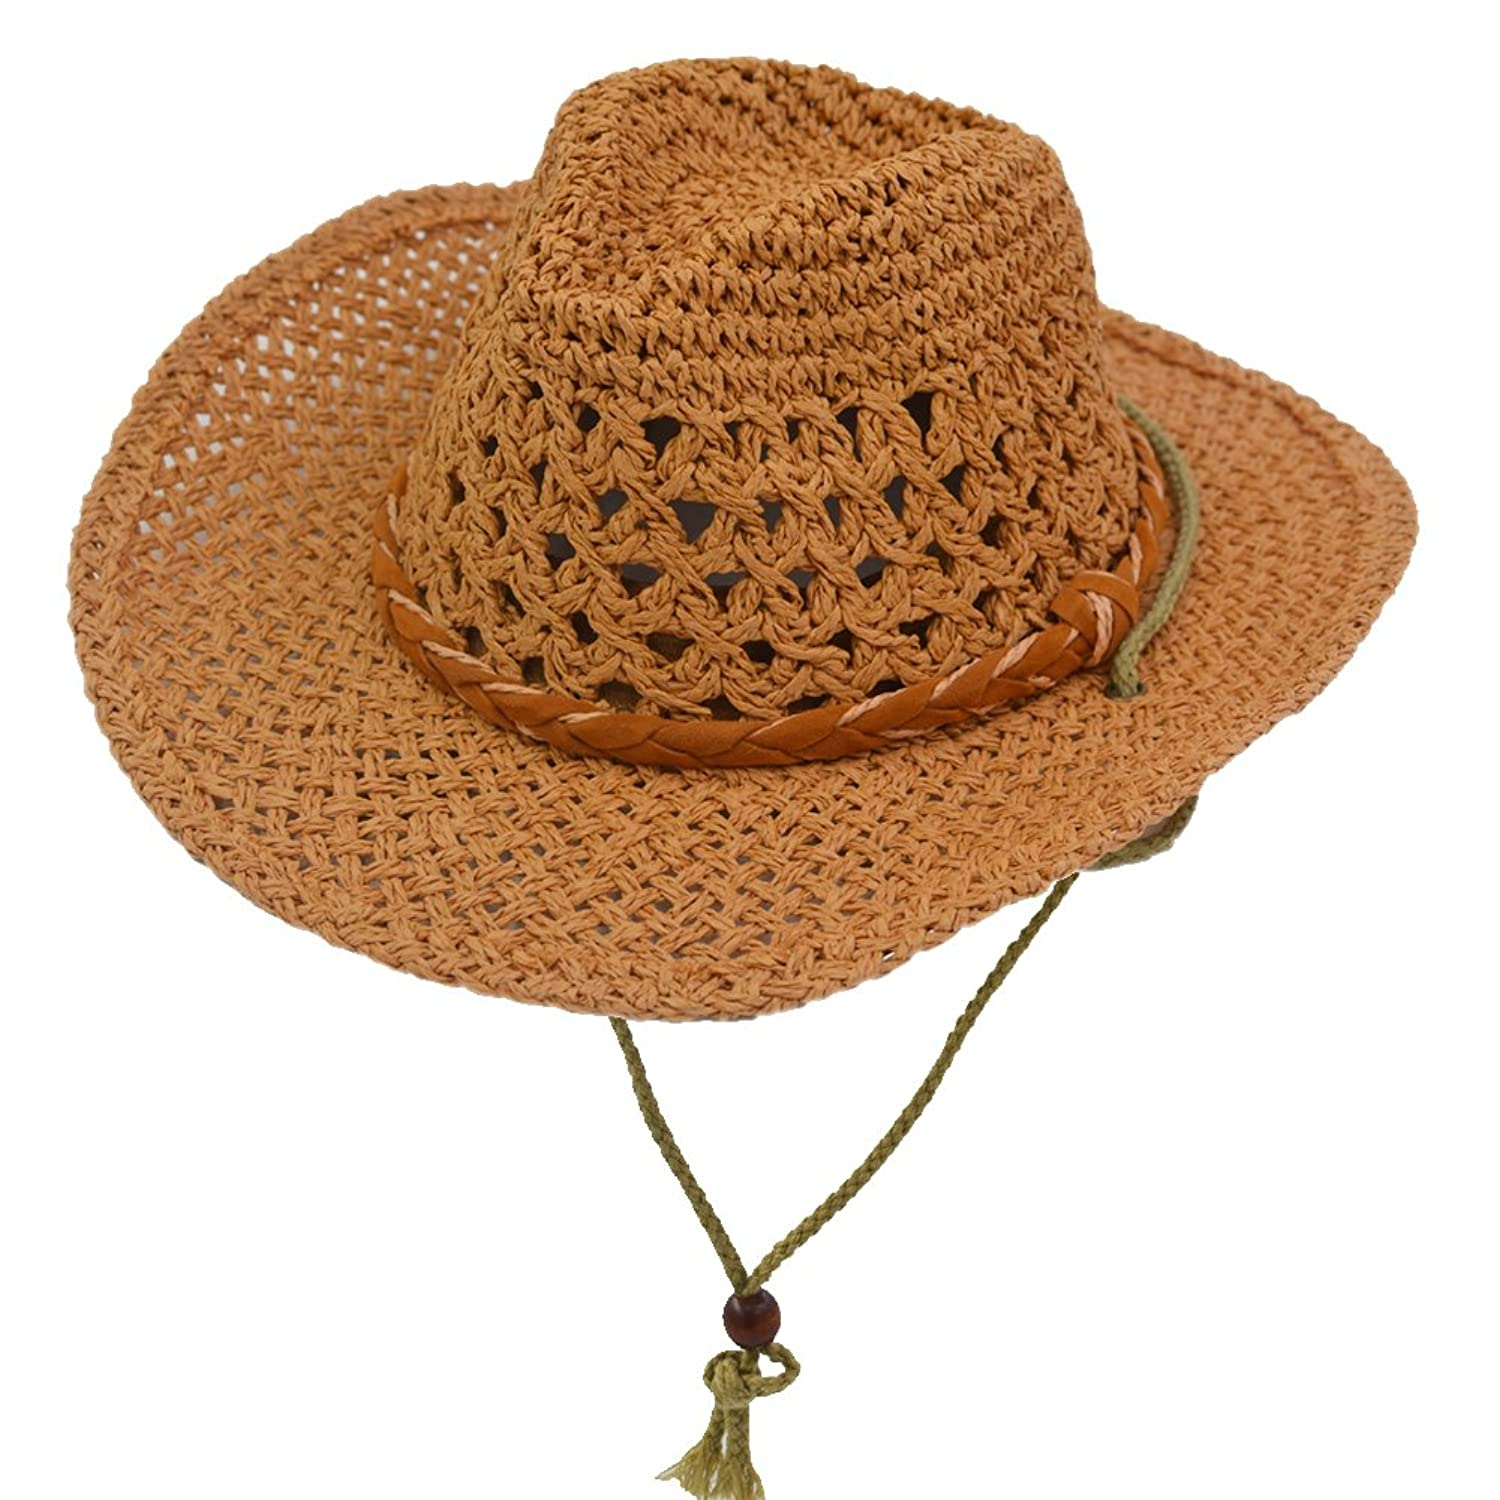 fd4cfb51a0b208 Amazon.com: Yosang Kids Western Straw Hat Outdoor Summer Sun Hat Breathable  Traveling Cowboy Cowgirl Hat Brown: Clothing